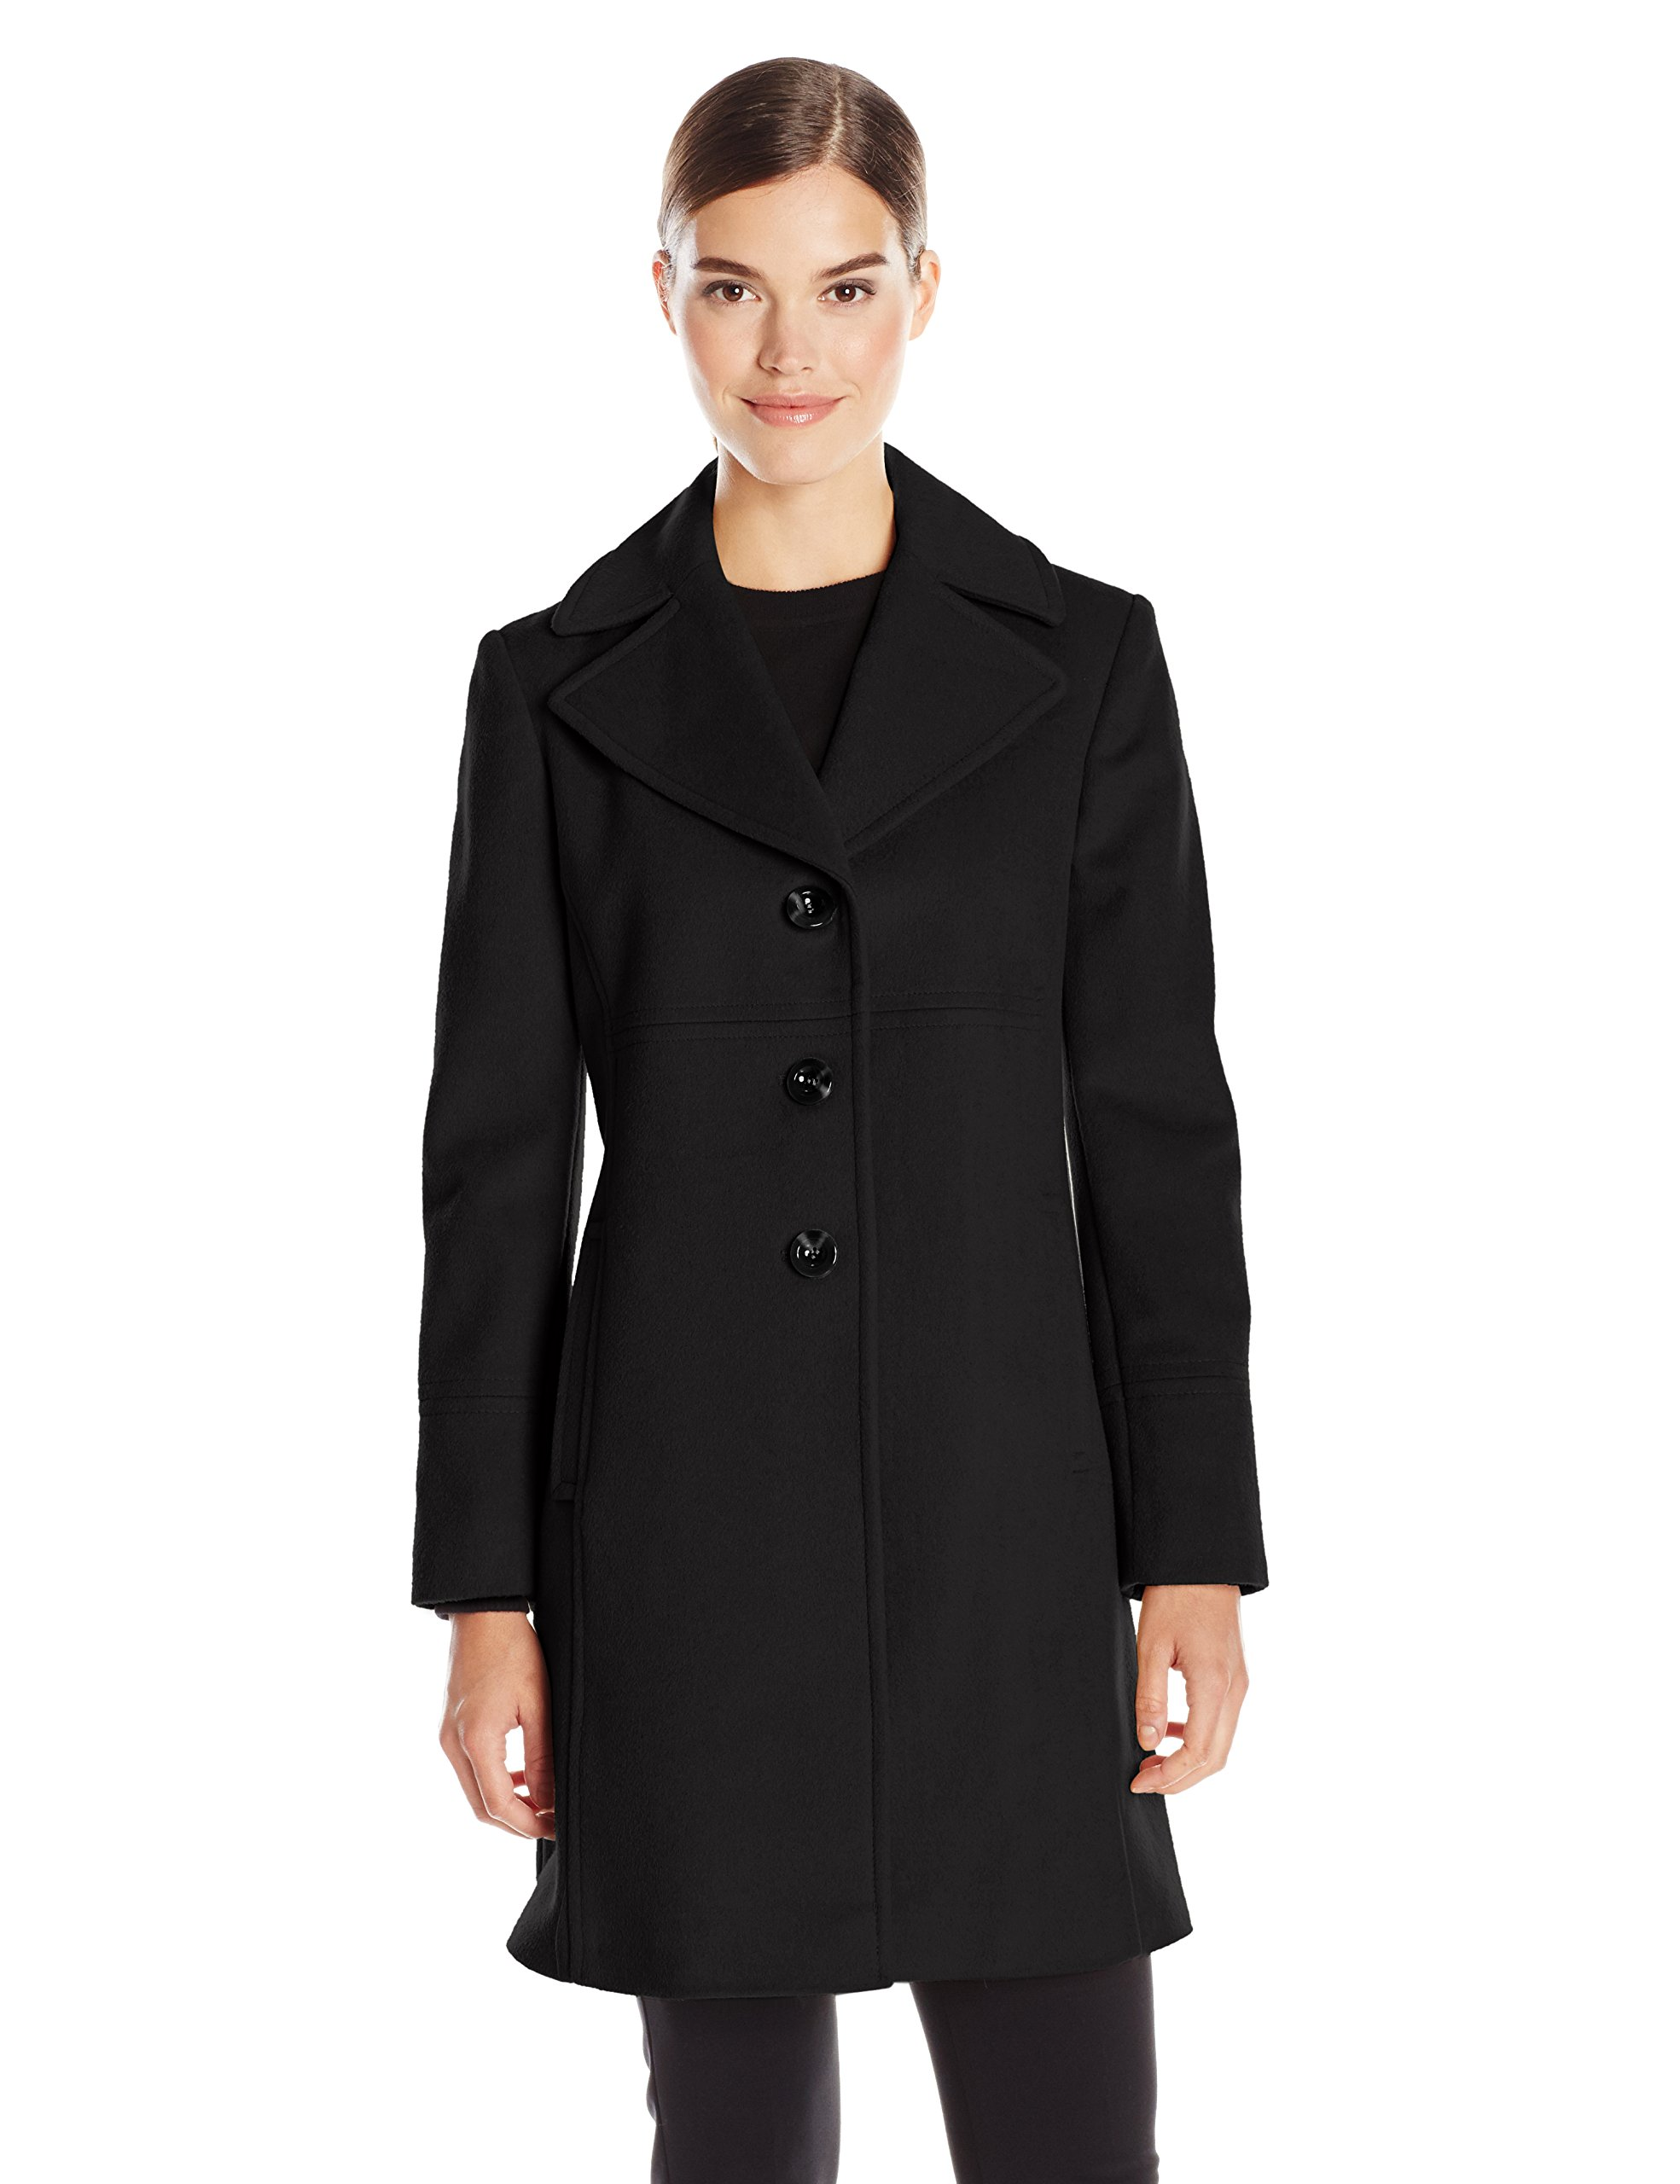 Larry Levine Women's Single Breasted Notch Collar Wool Coat, Black, 6